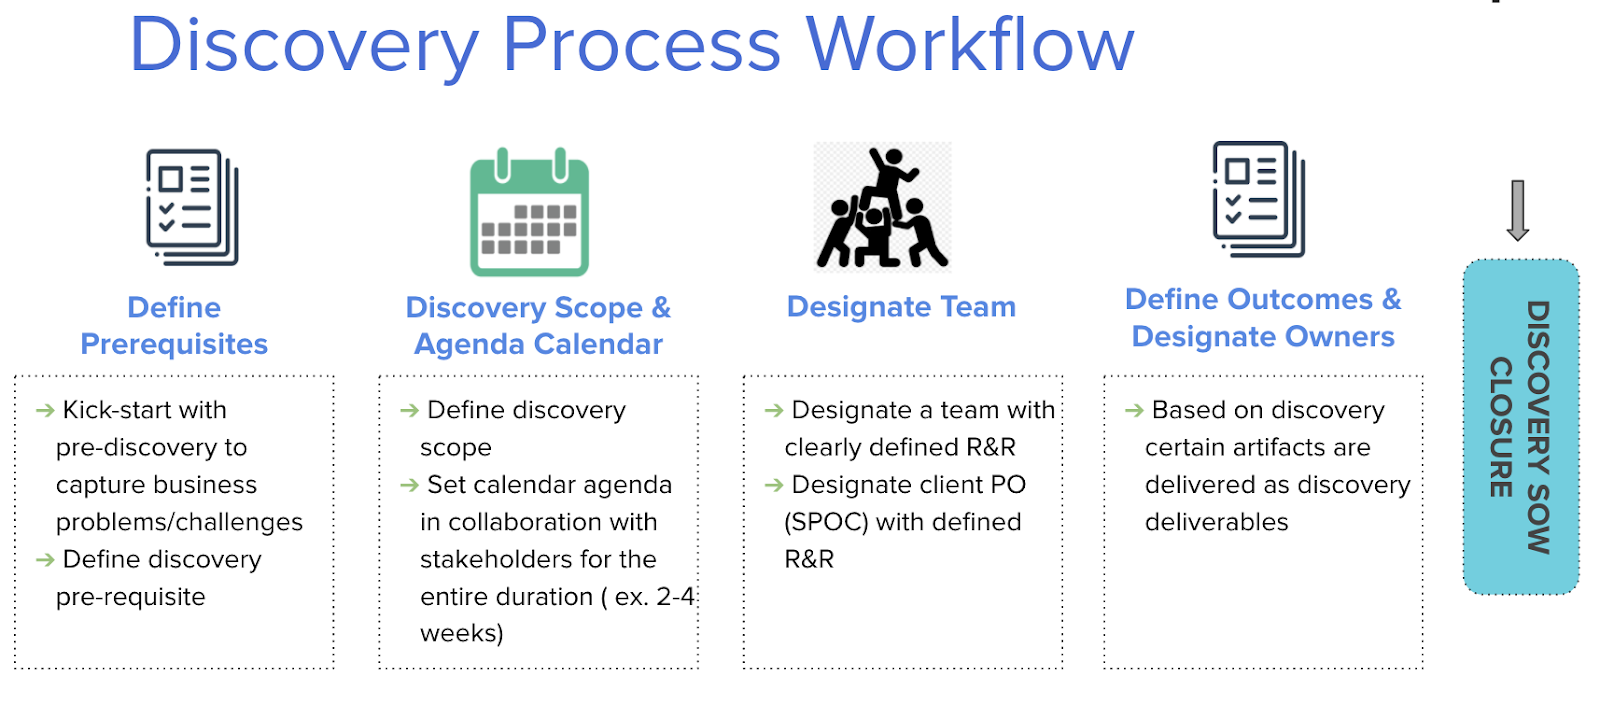 4 boxes showing discovery workflow